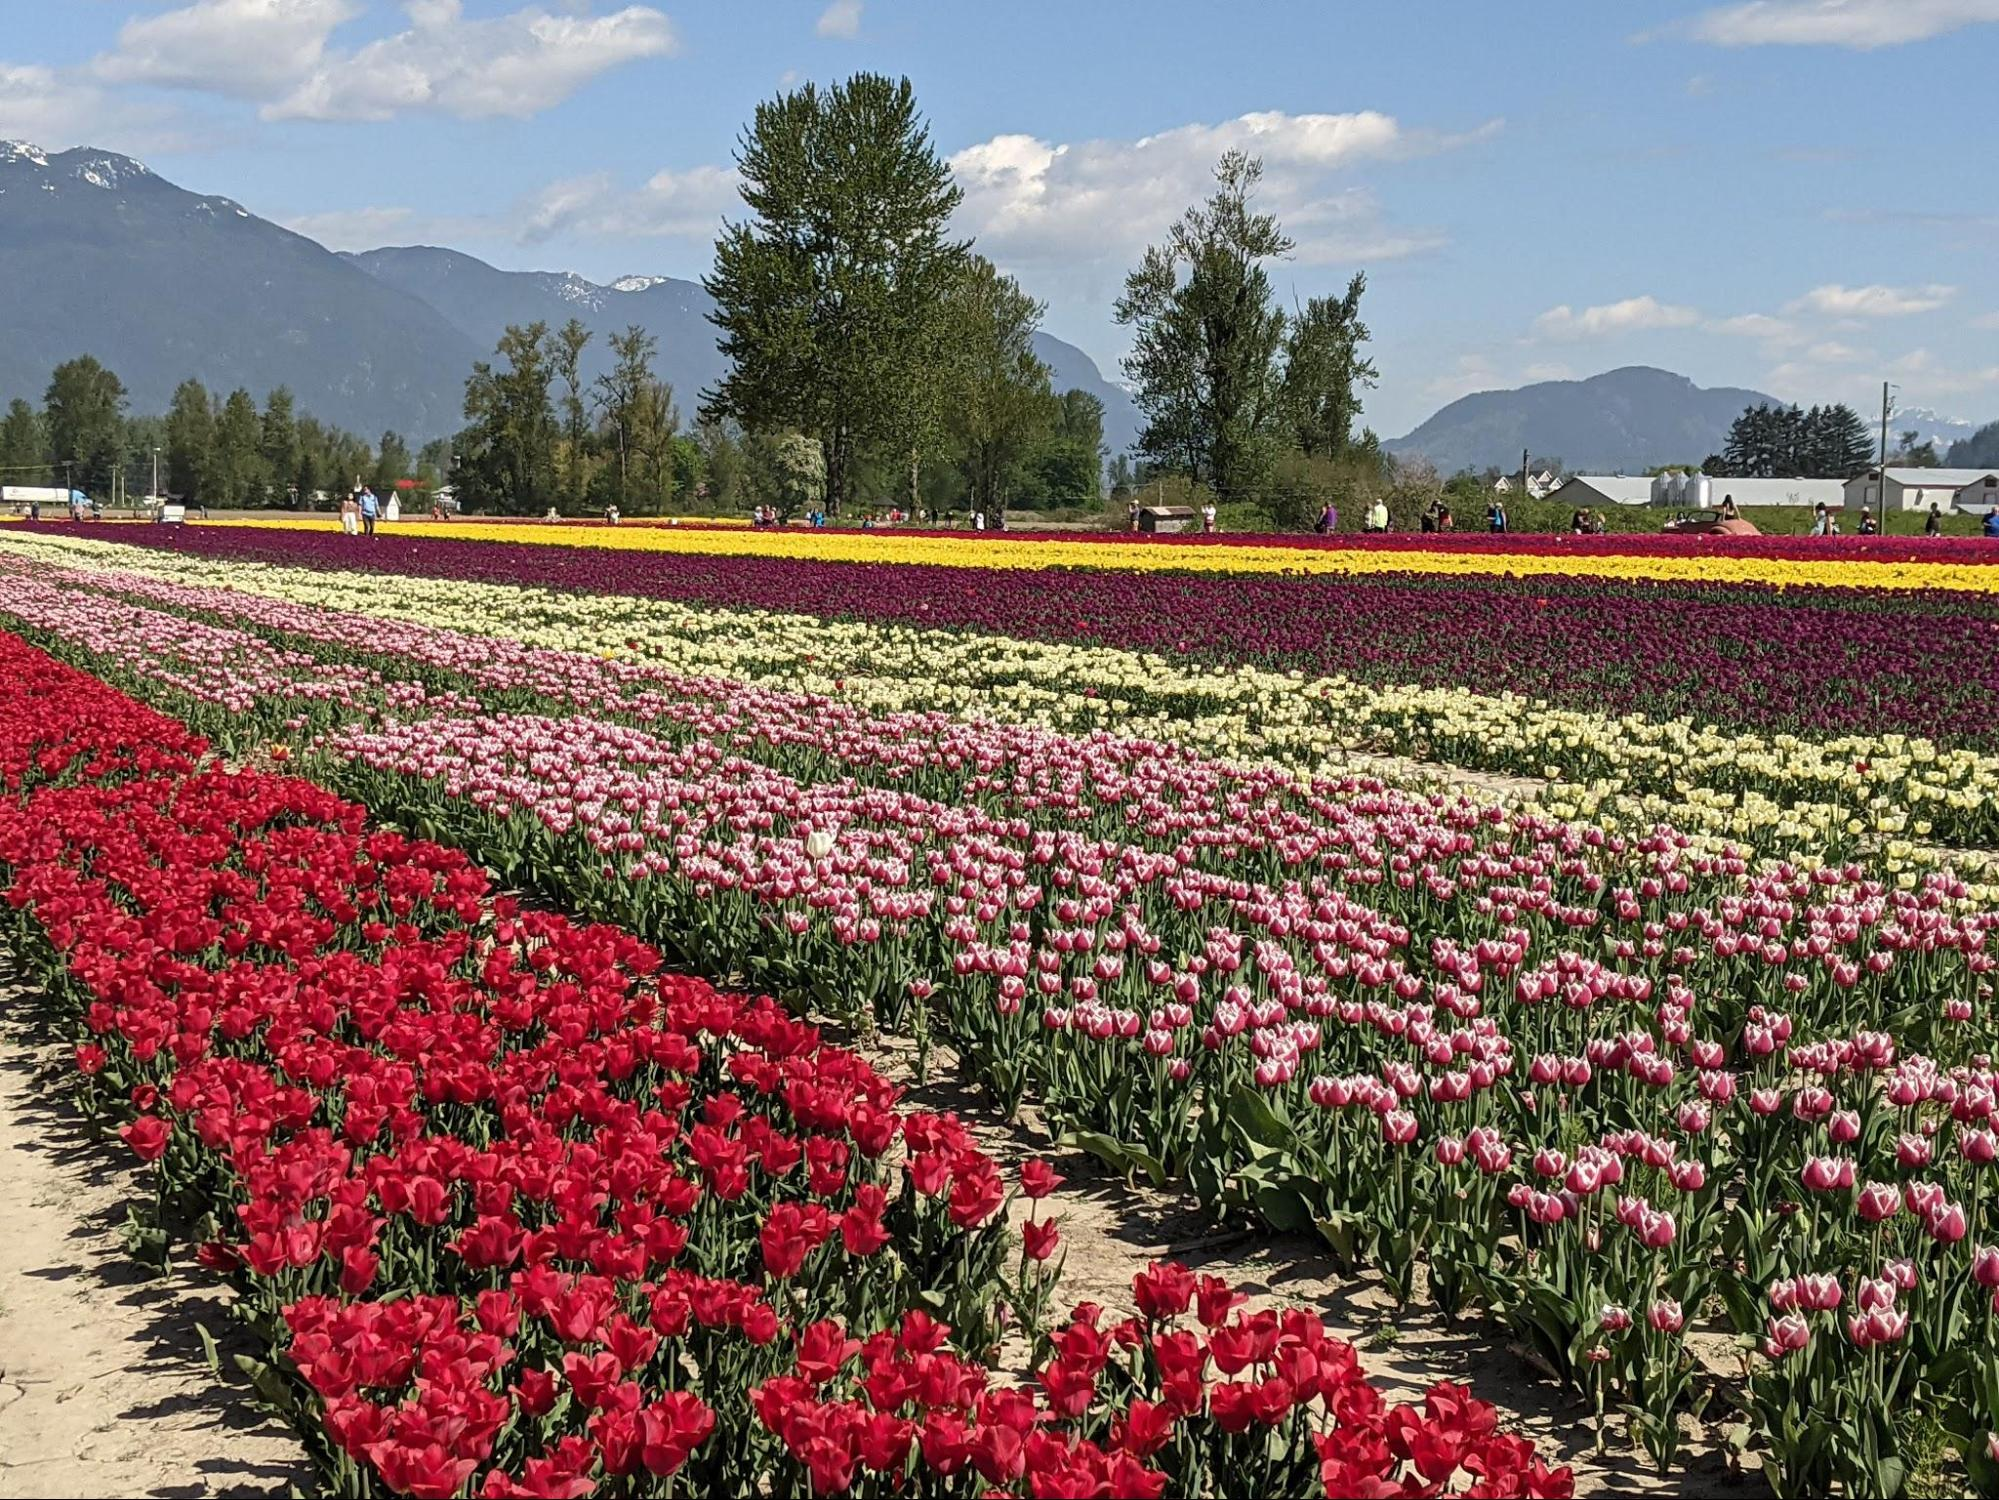 A large field of multi-colored tulips growing in rows at the Chilliwack tulips festival.